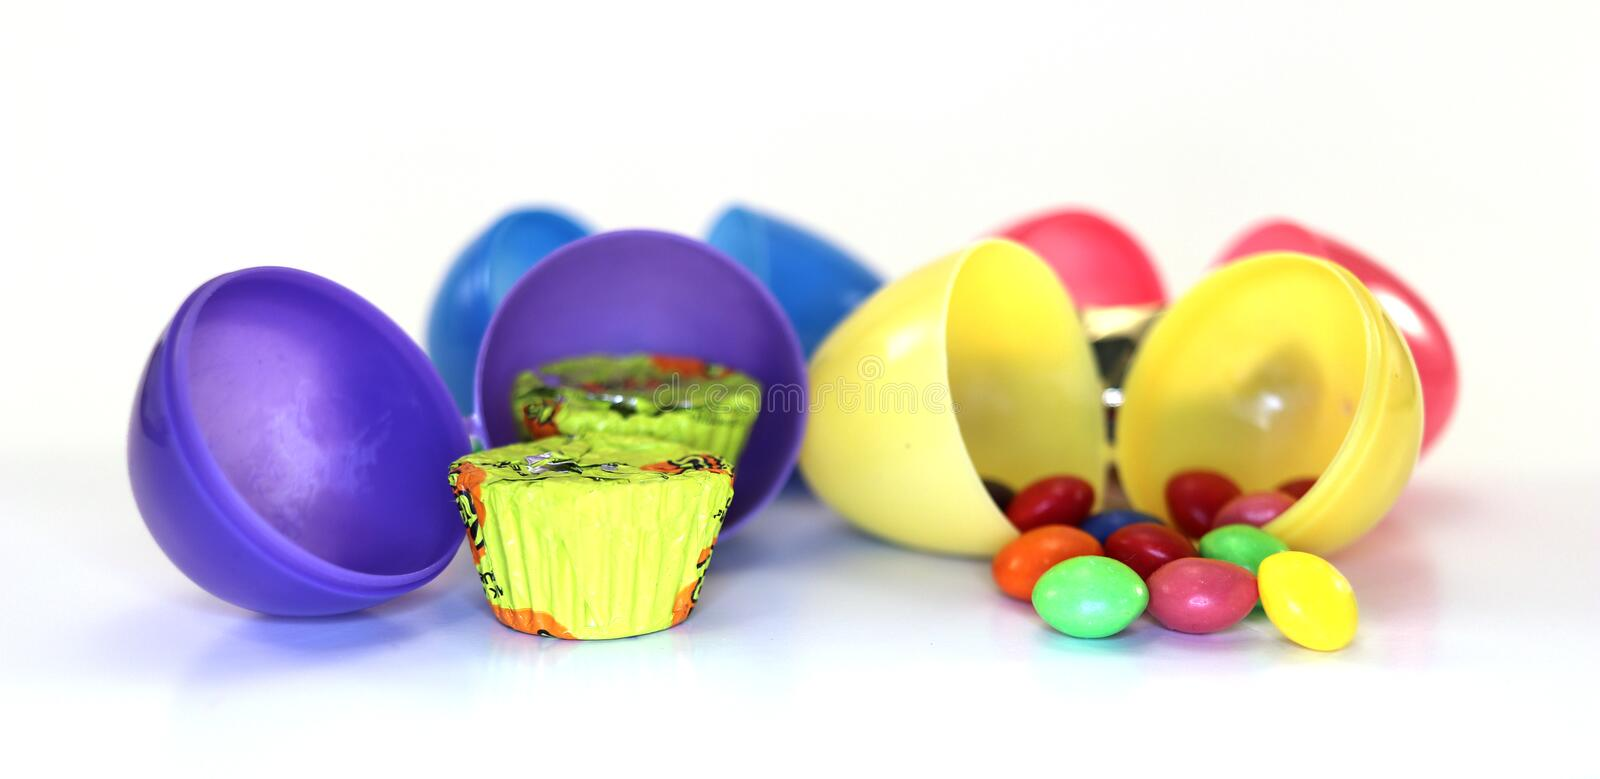 Different colored easter eggs with candy inside stock images